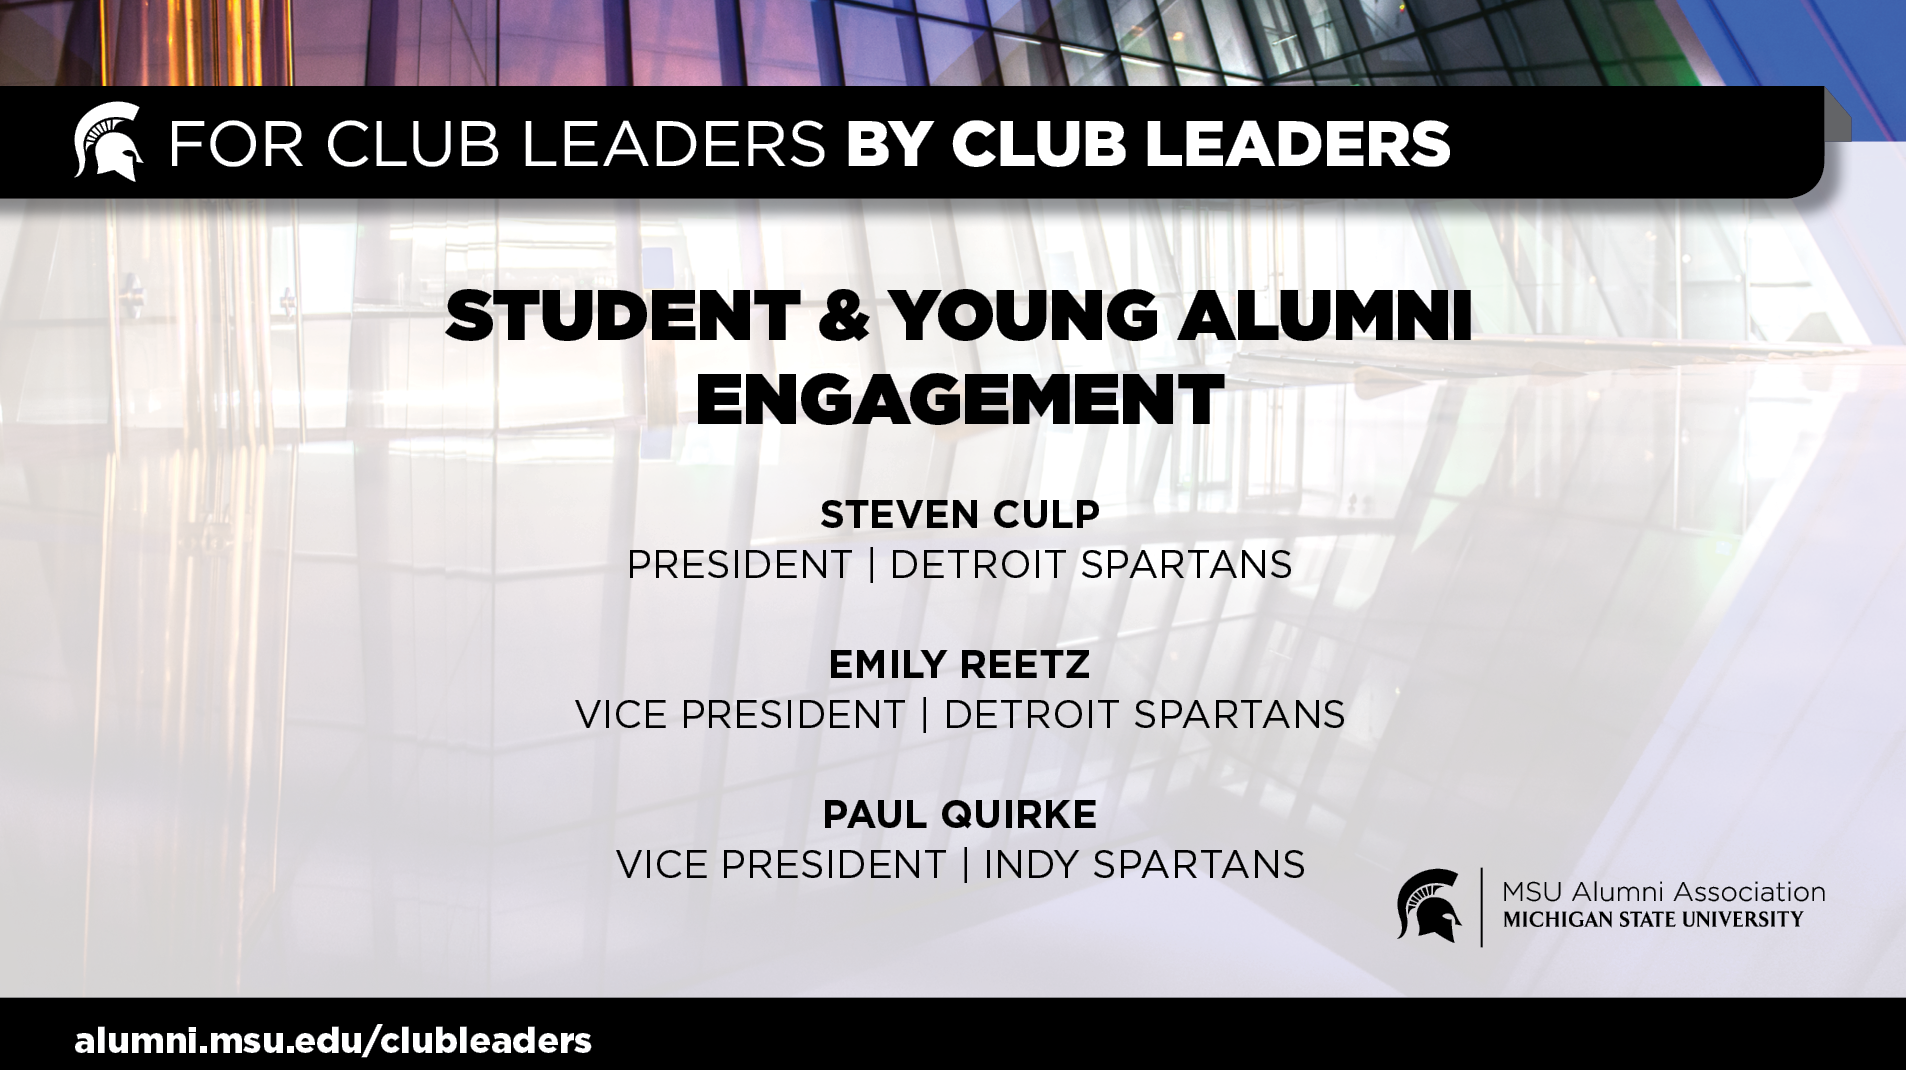 livestream cover image for Student & Young Alumni Engagement | Indy & Detroit Spartans